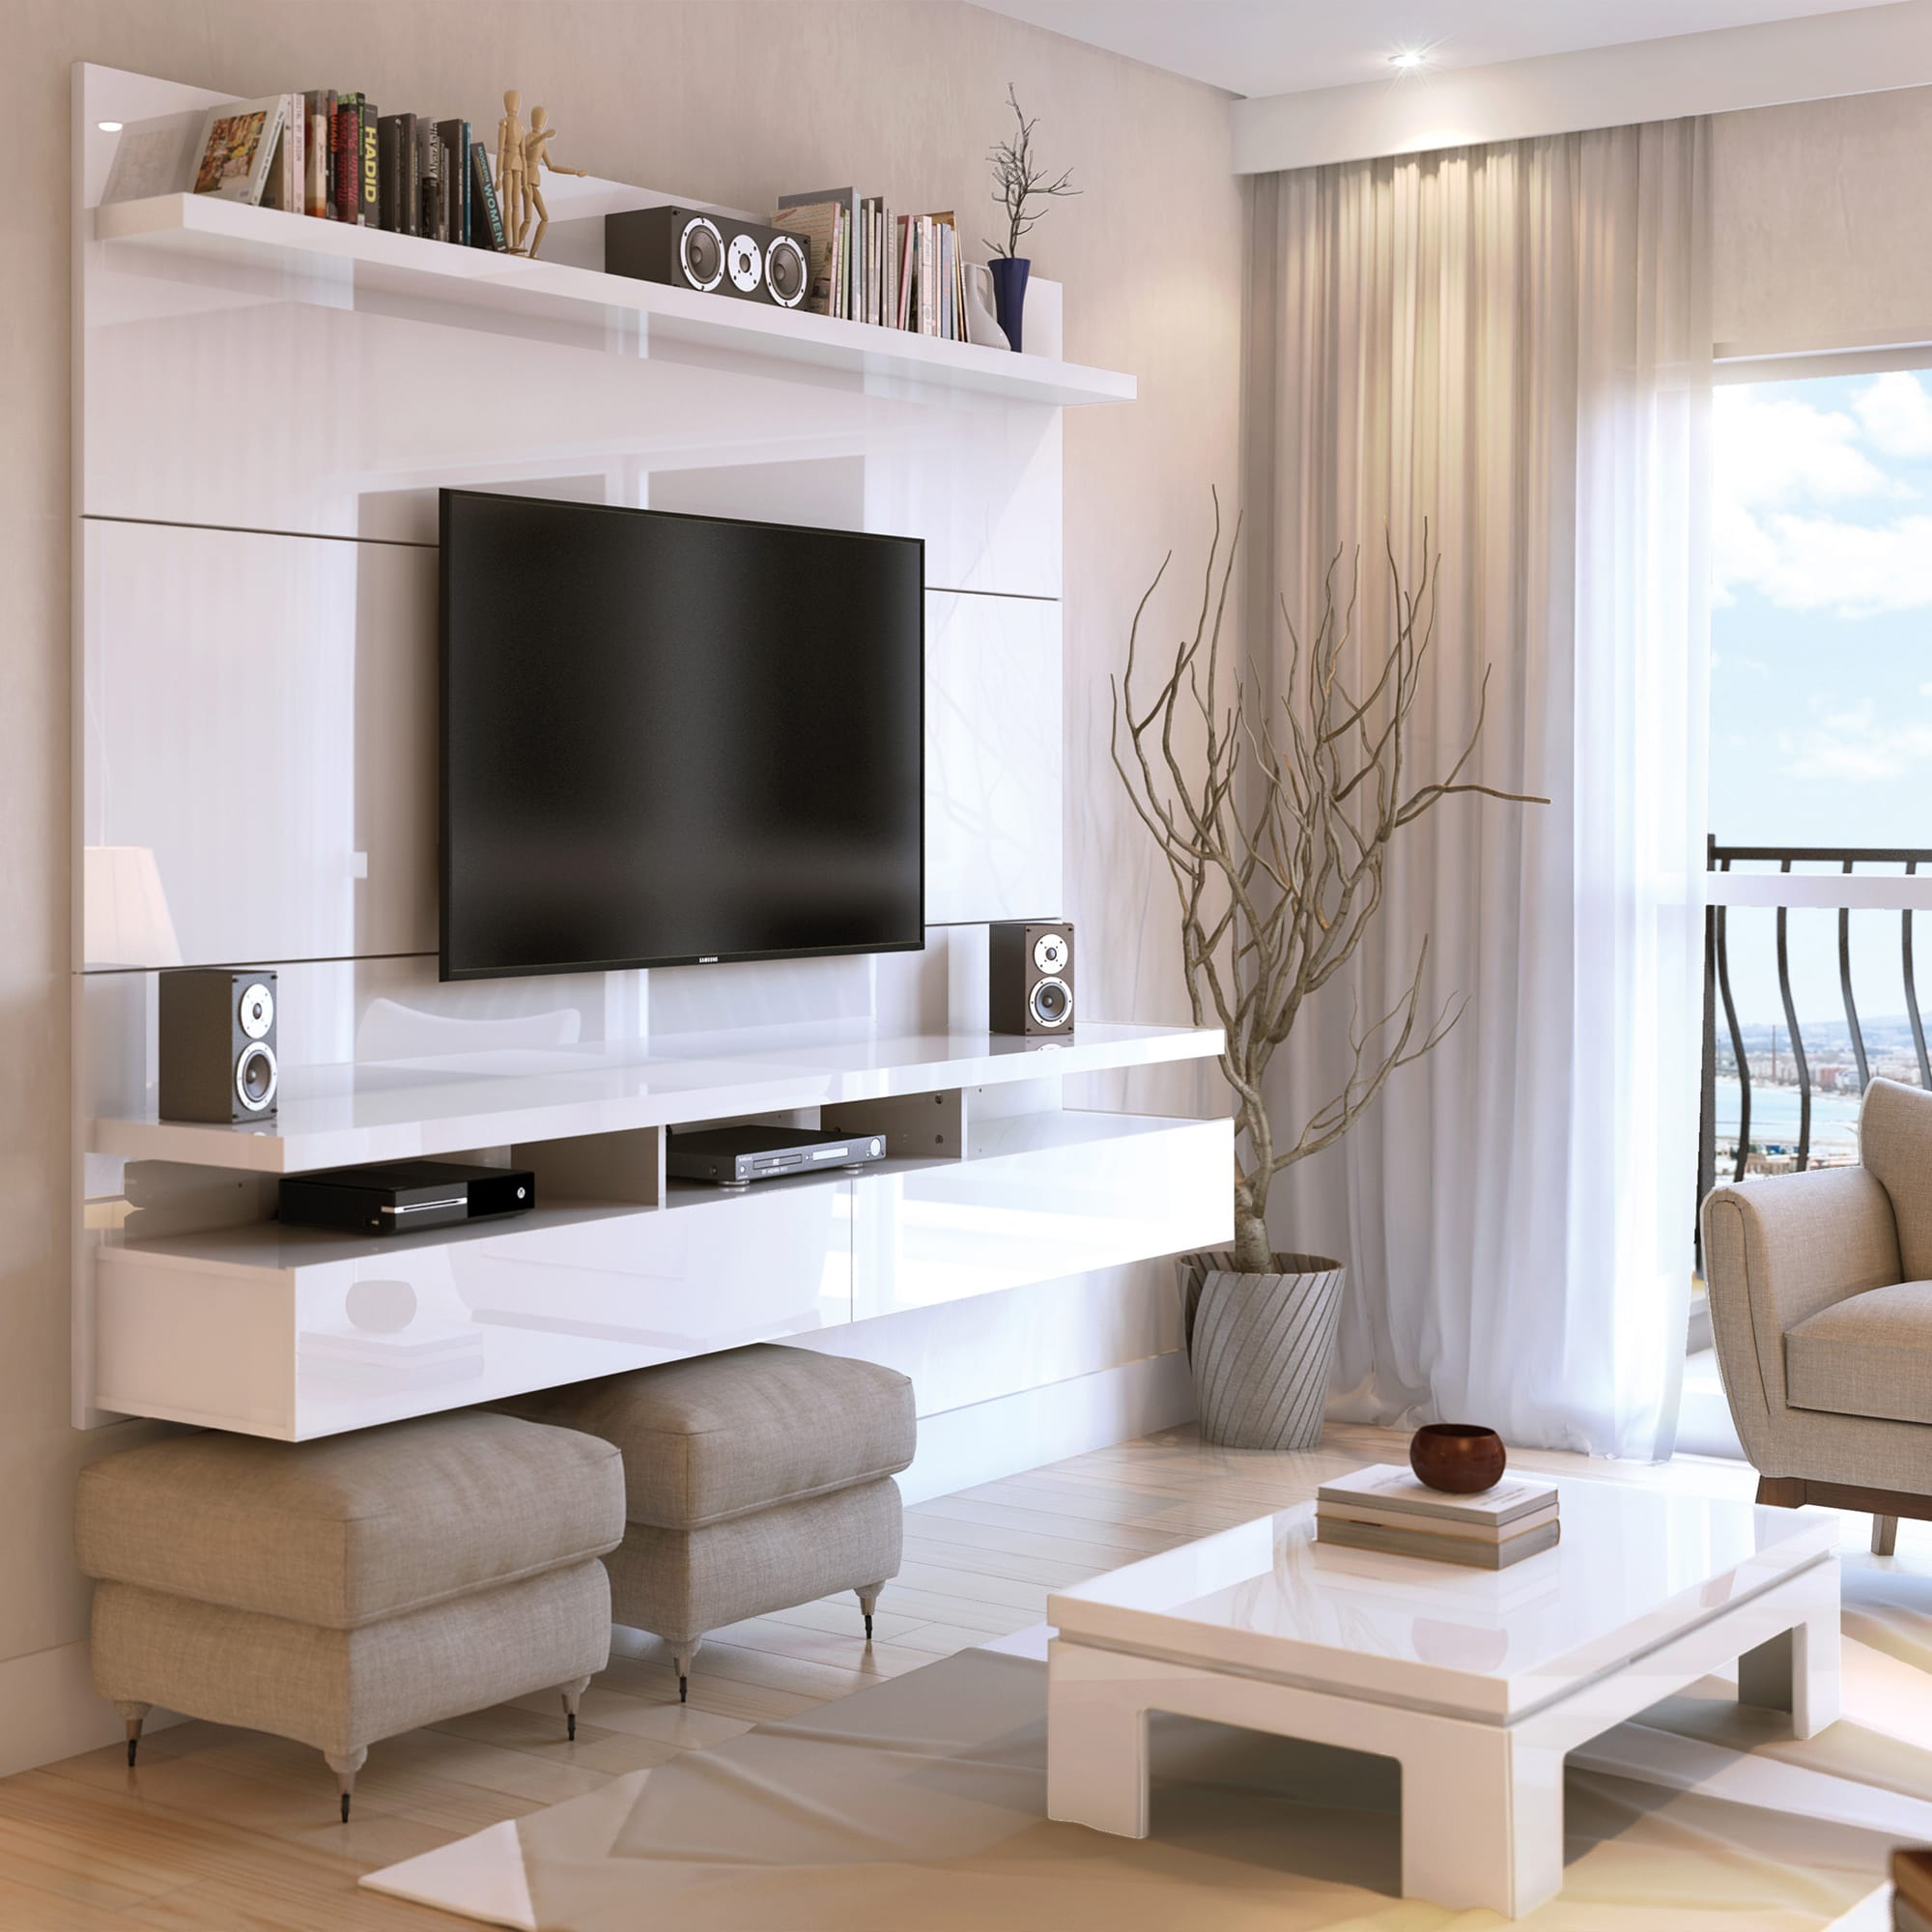 City 2.2 White Gloss Floating Wall Theater Entertainment